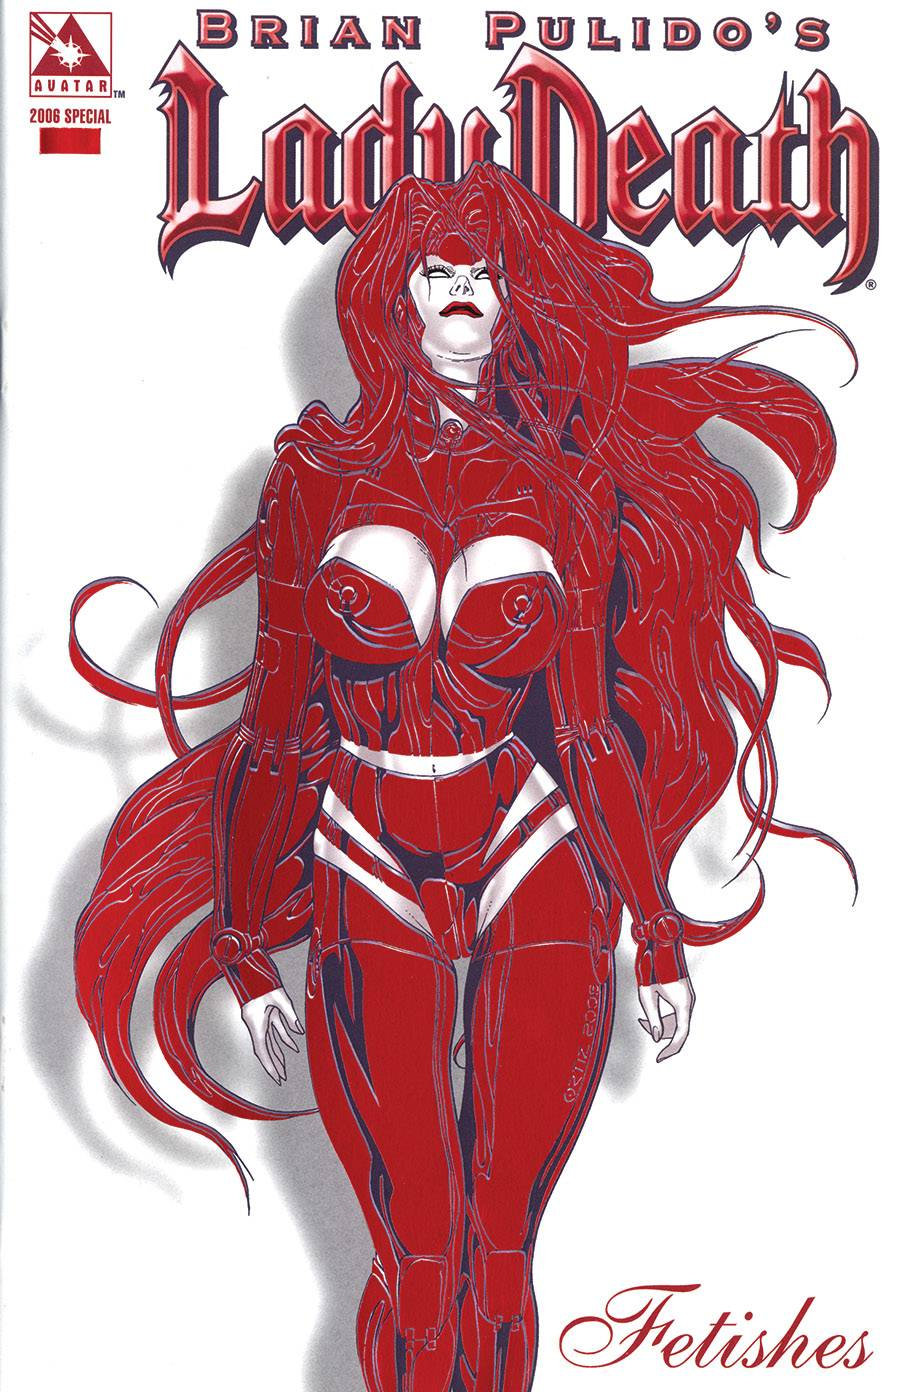 LADY DEATH FETISHES 2006 RED HOT FOIL VAR (MR)